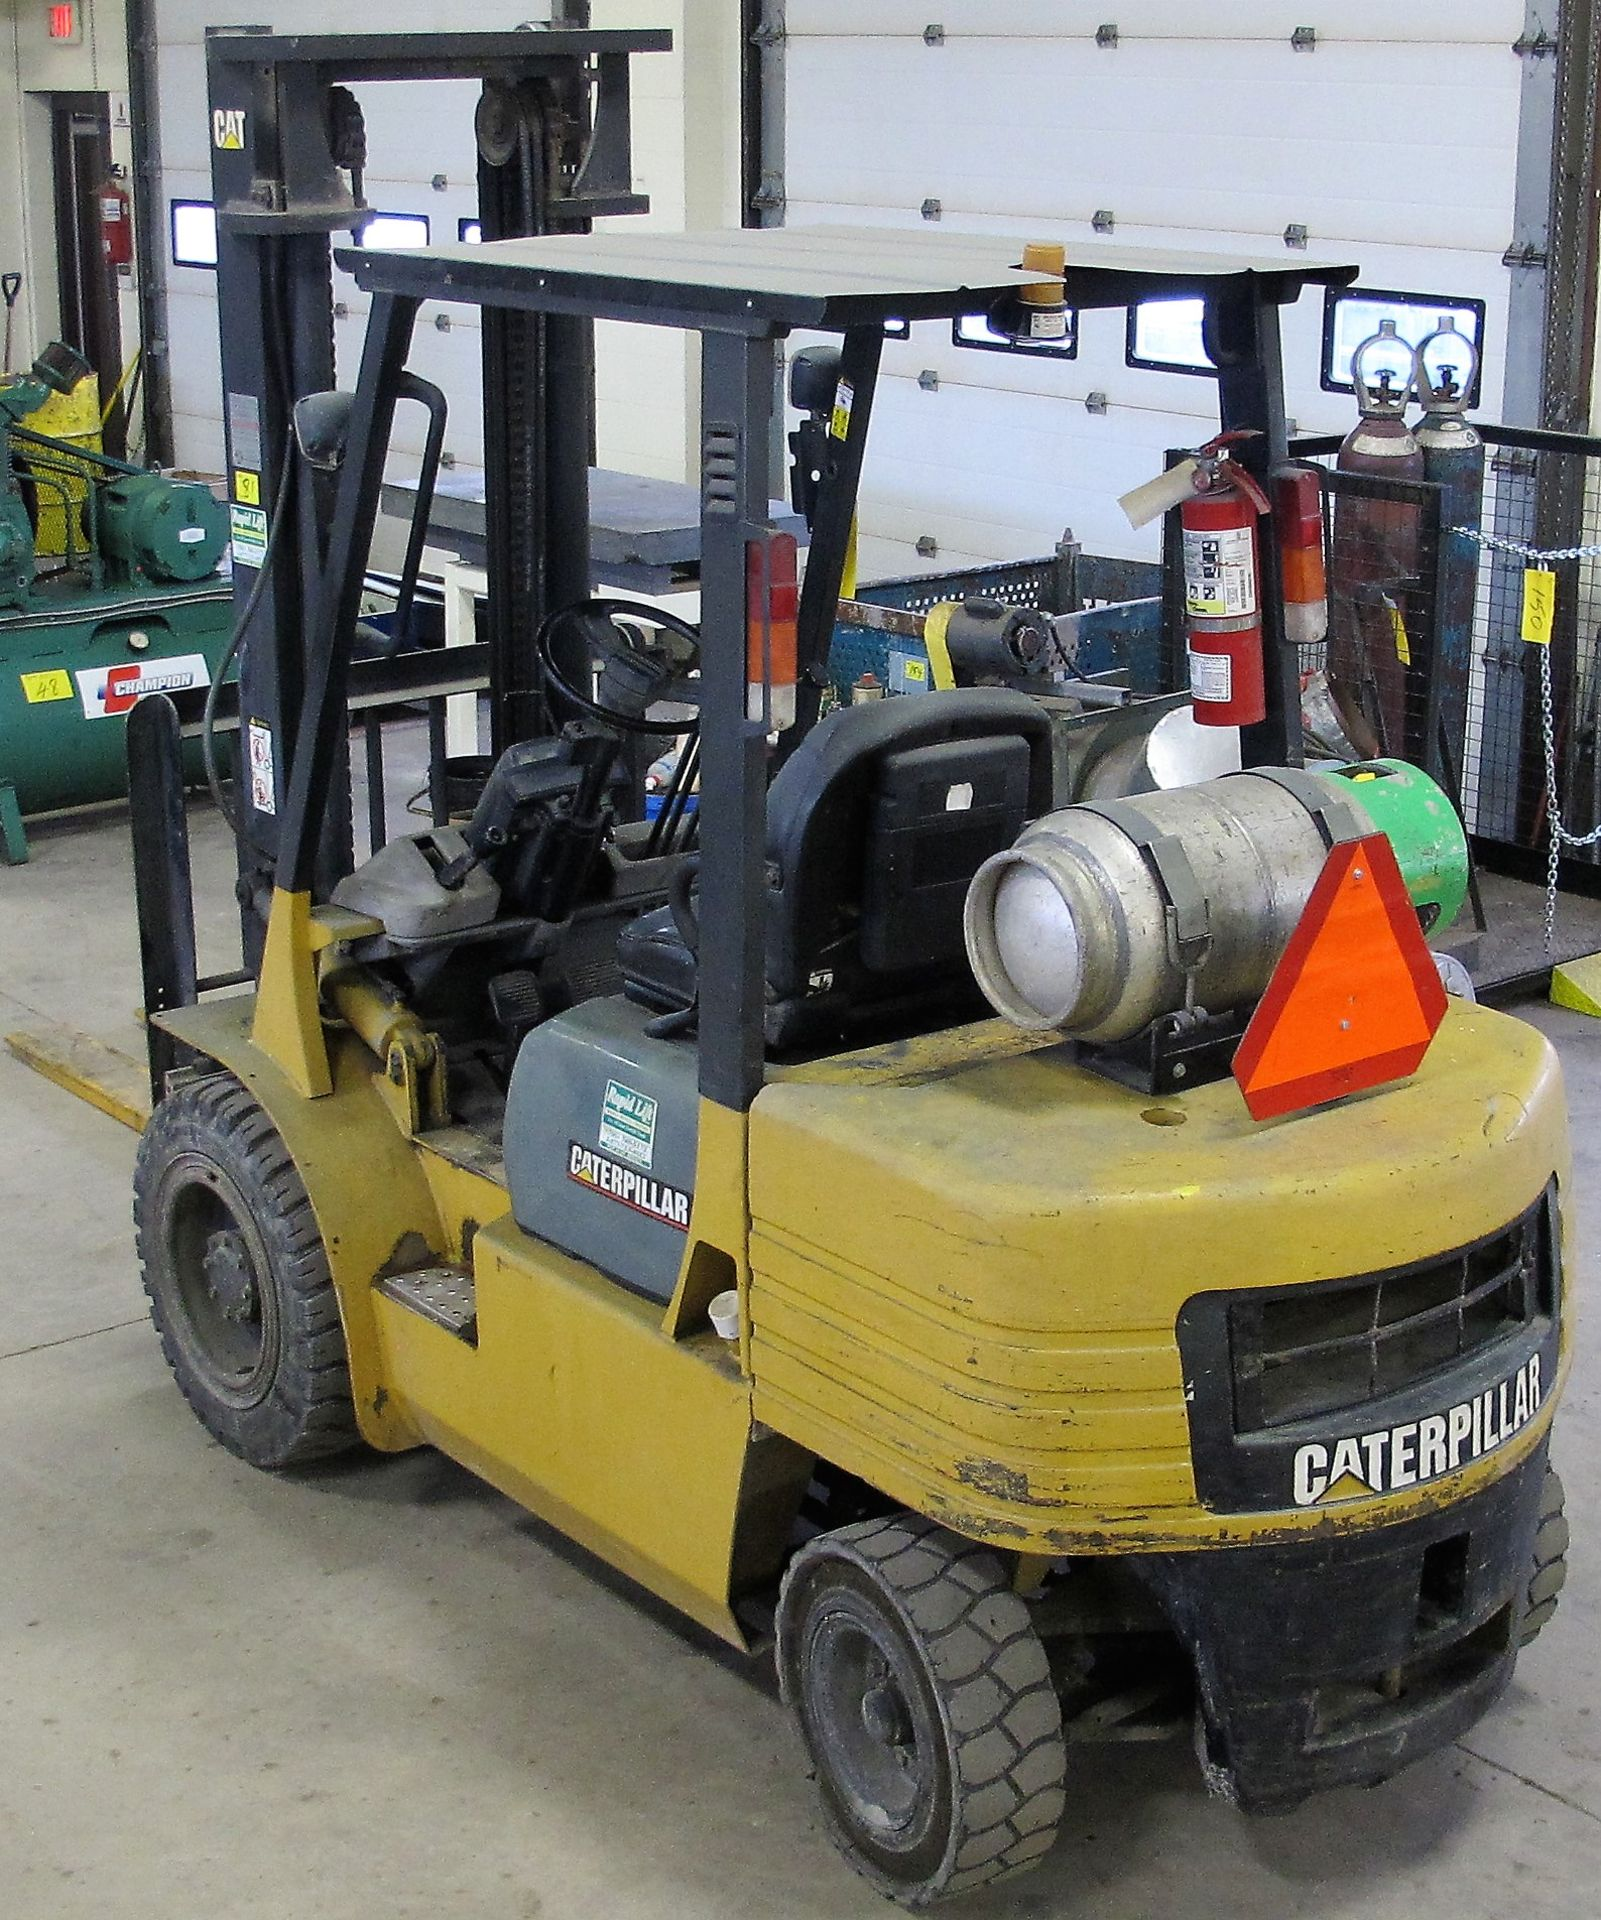 """Lot 81 - CATERPILLAR GP30 PROPANE FORKLIFT, 6,000LB CAPACITY, S/N 7AM01675, 146"""" MAX LIFT, 2-STAGE MAST, SIDE"""